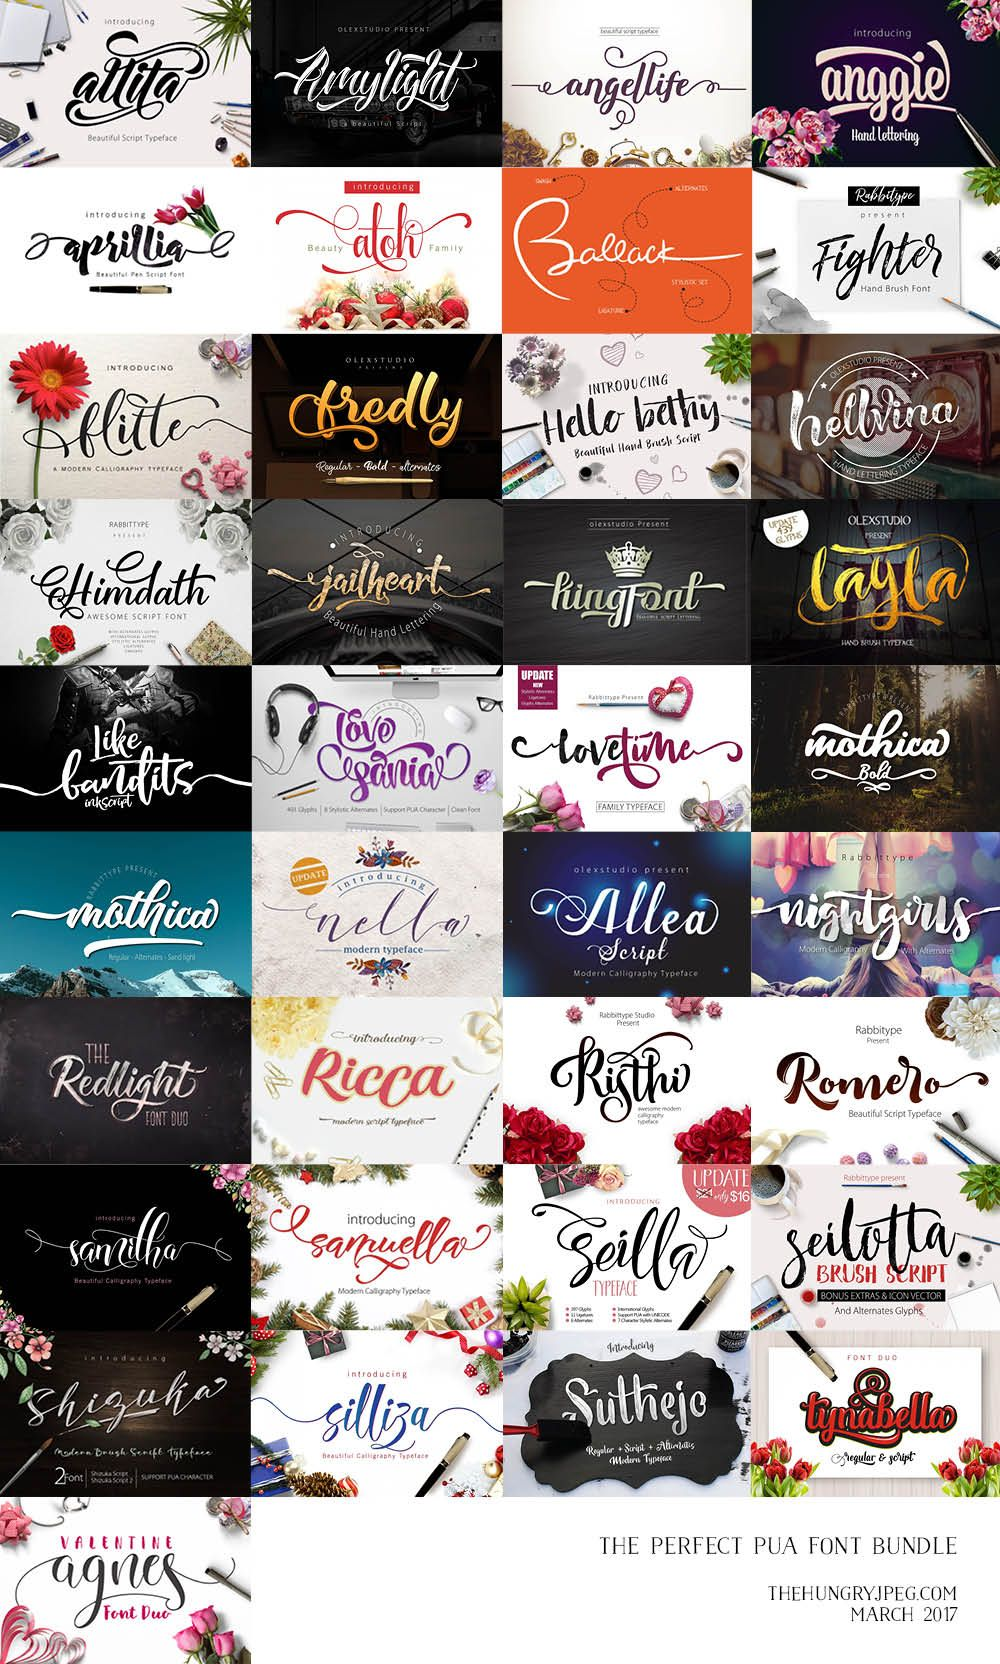 Use HOOPMAMA20 for 20 off The Perfect PUA Font Bundle by